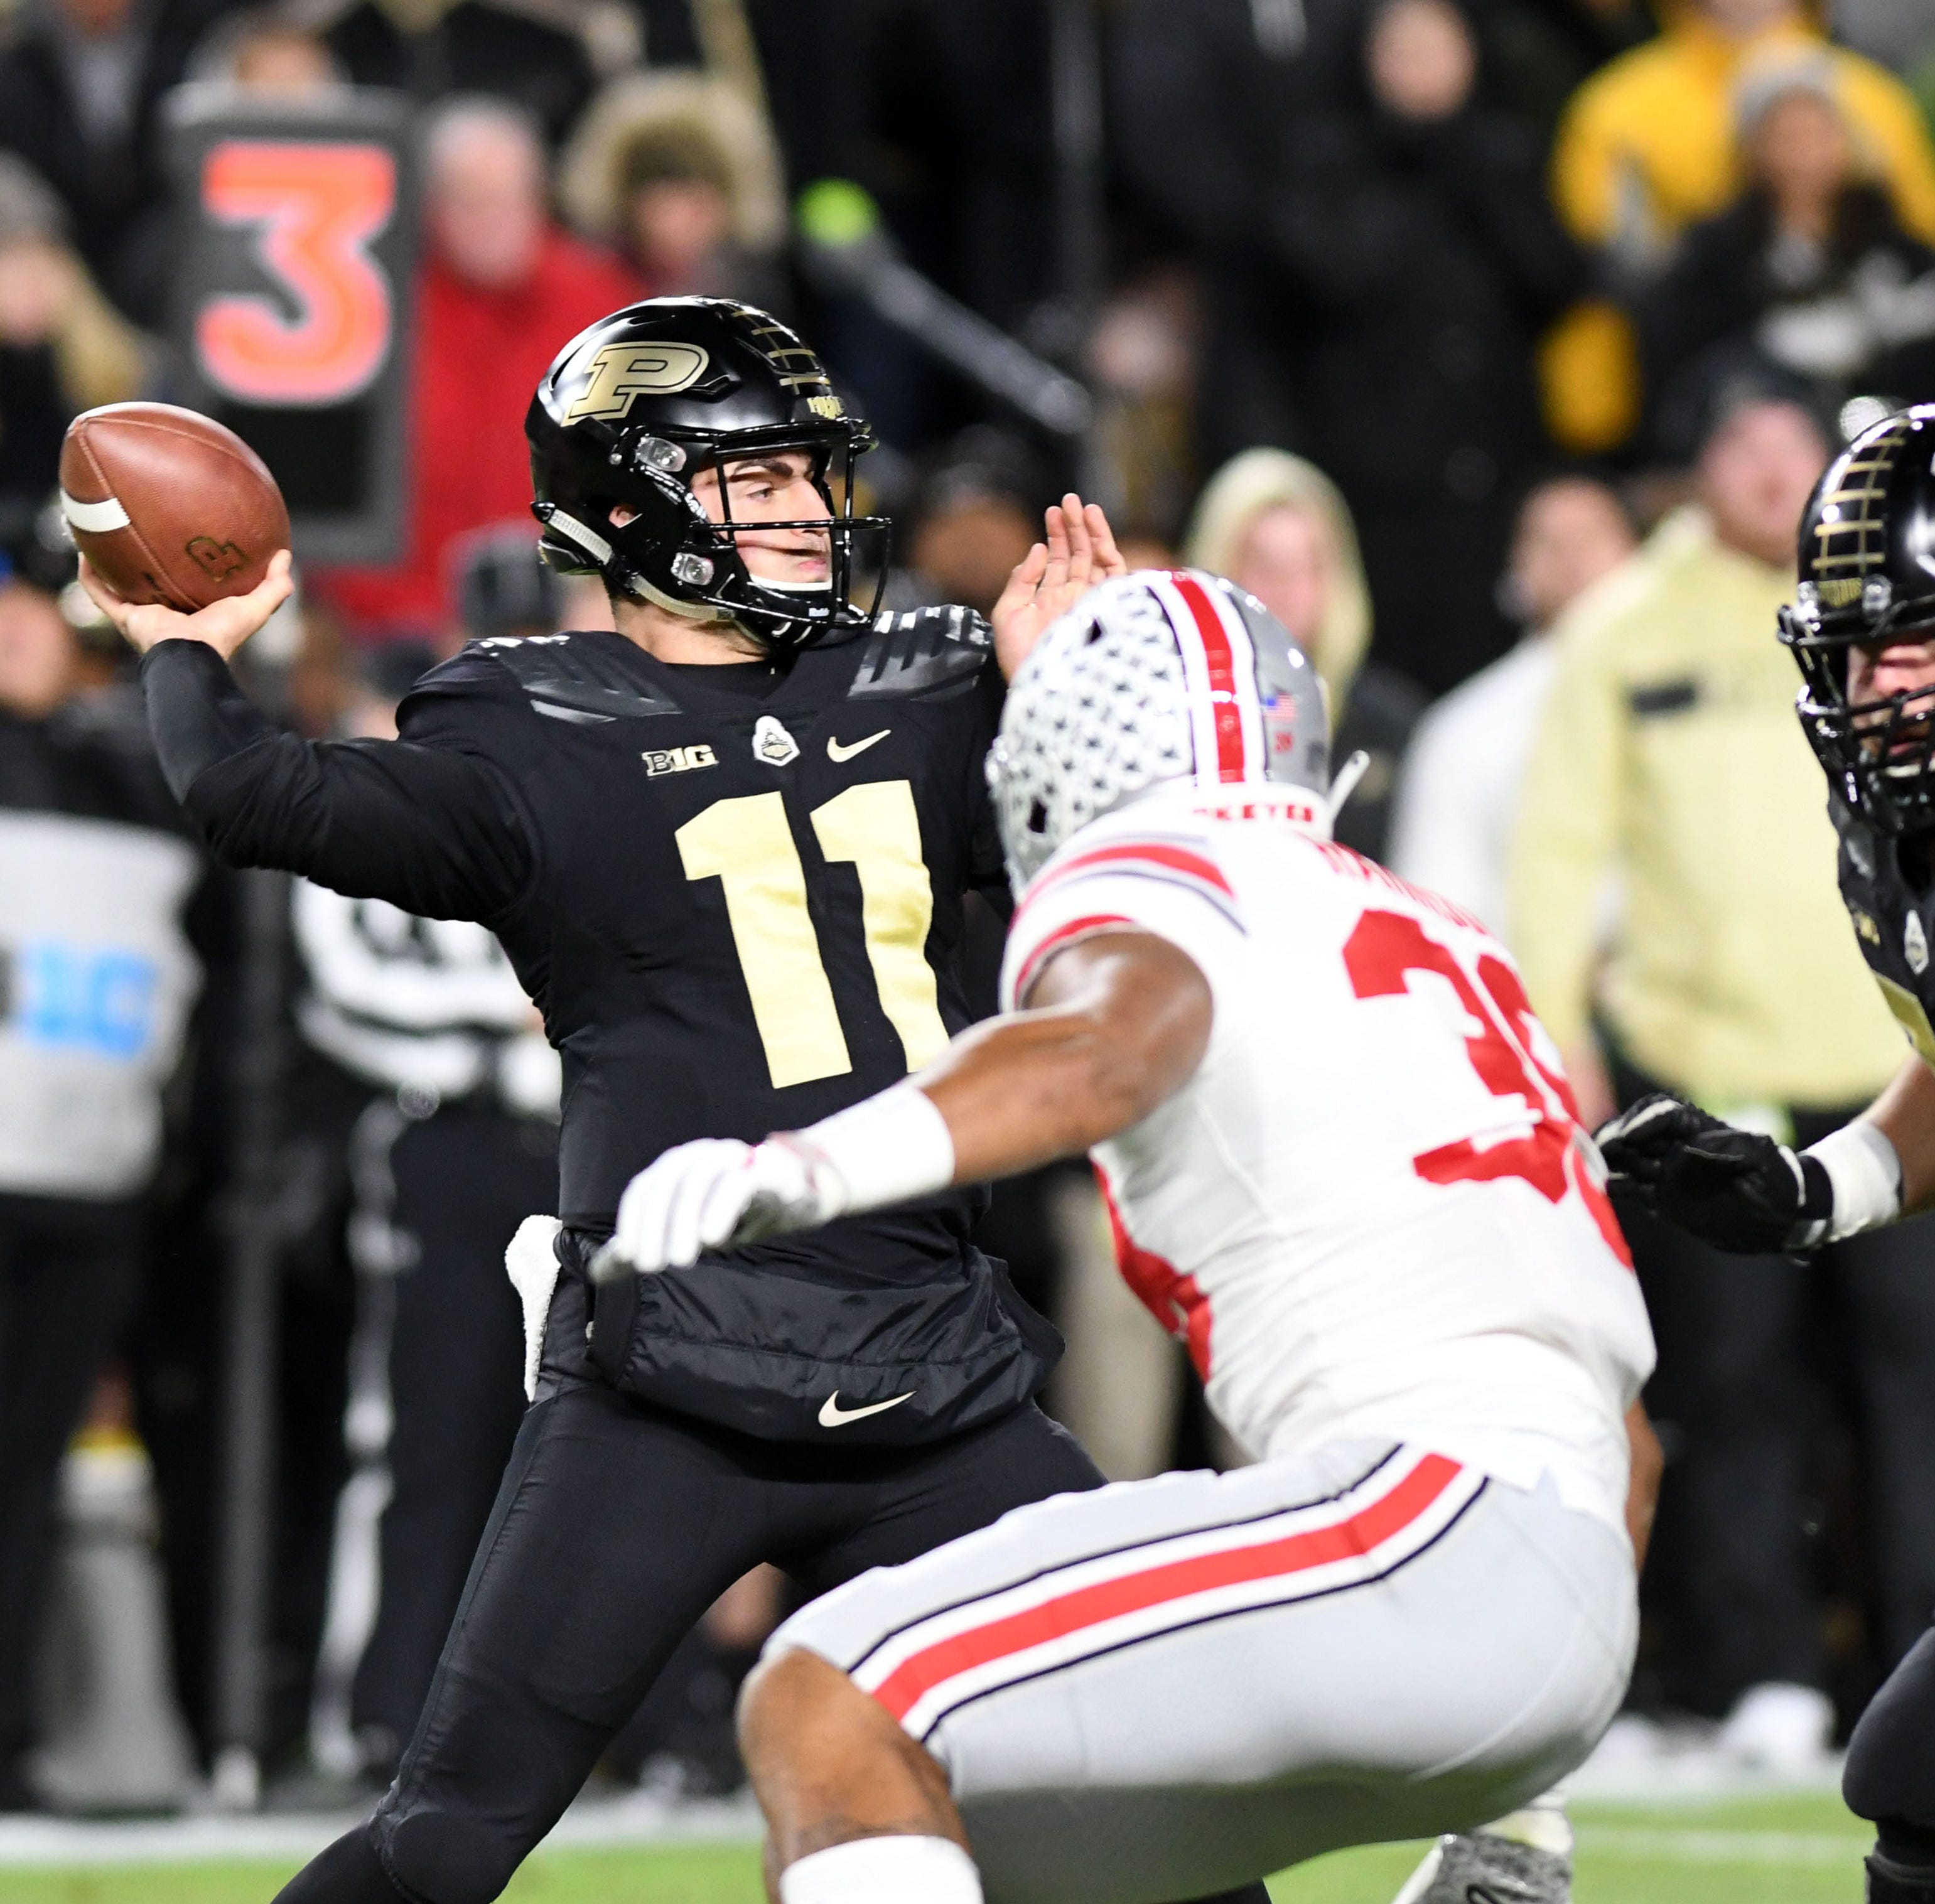 Purdue football: 5 facts from the Boilermakers' last win against a top-5 team